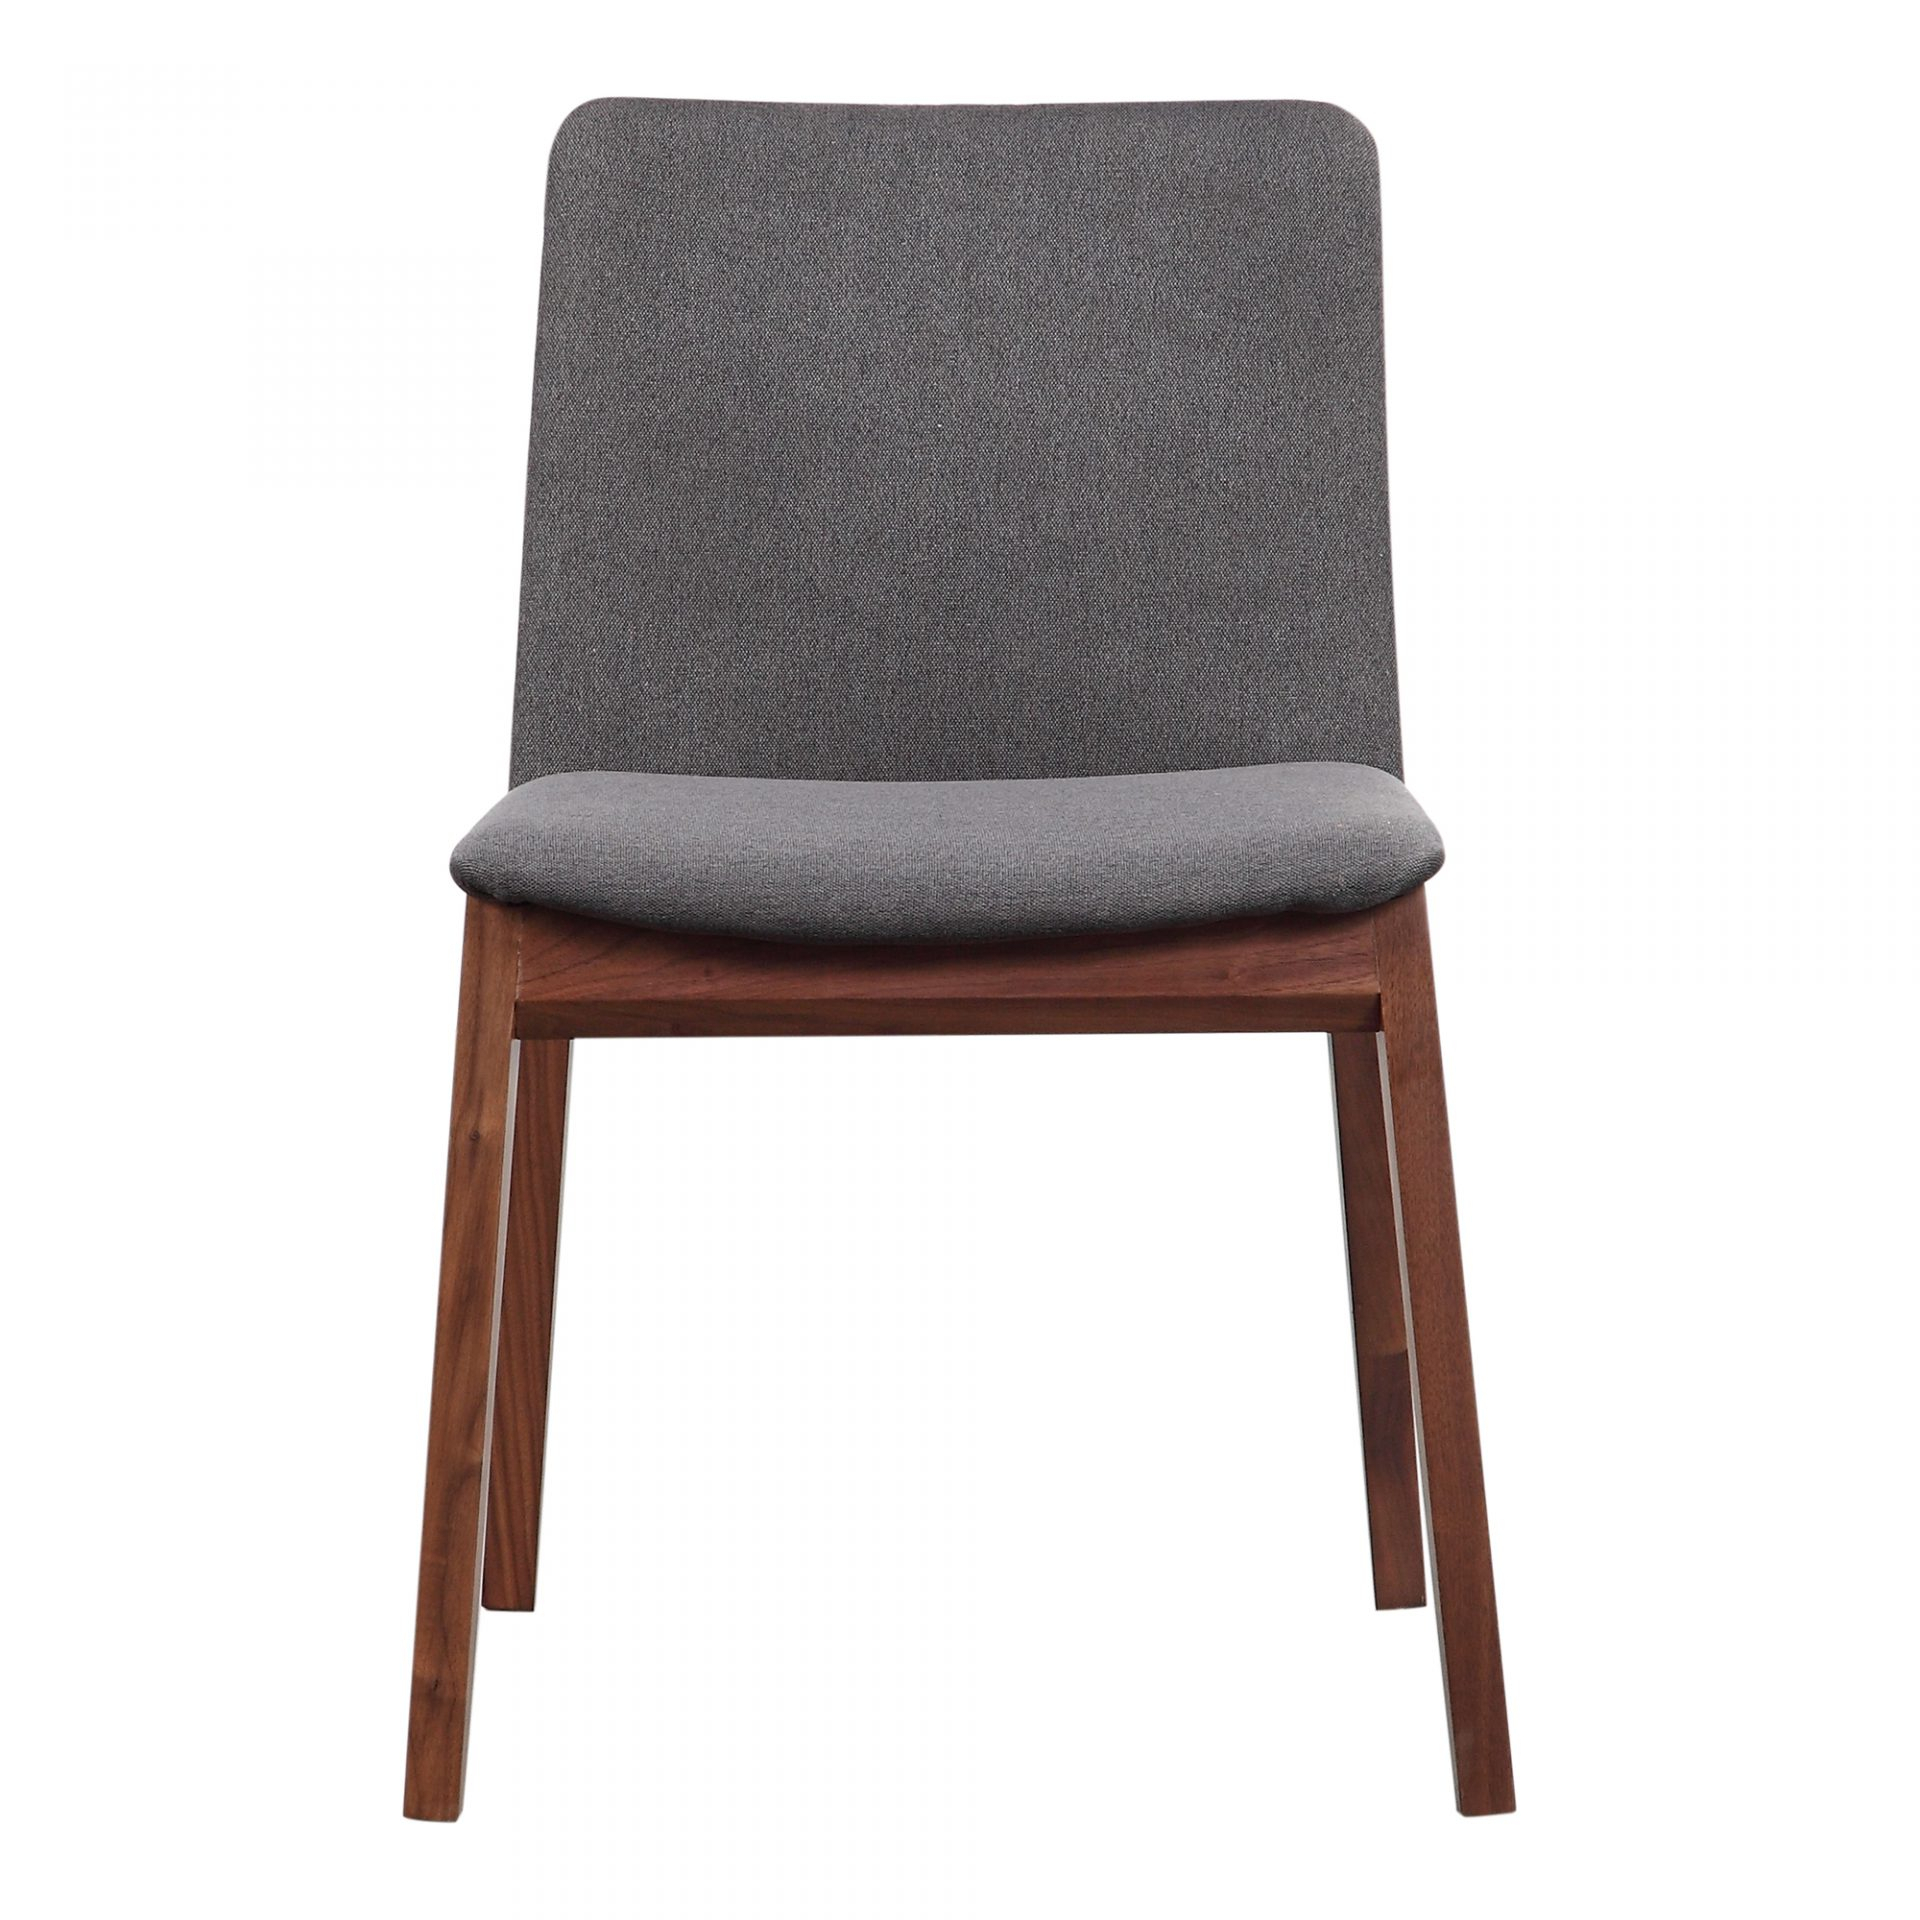 Inspiration about Dining Chairs | Categories | Moe's With Regard To Aria Antique Grey Rocking Chairs (#19 of 20)